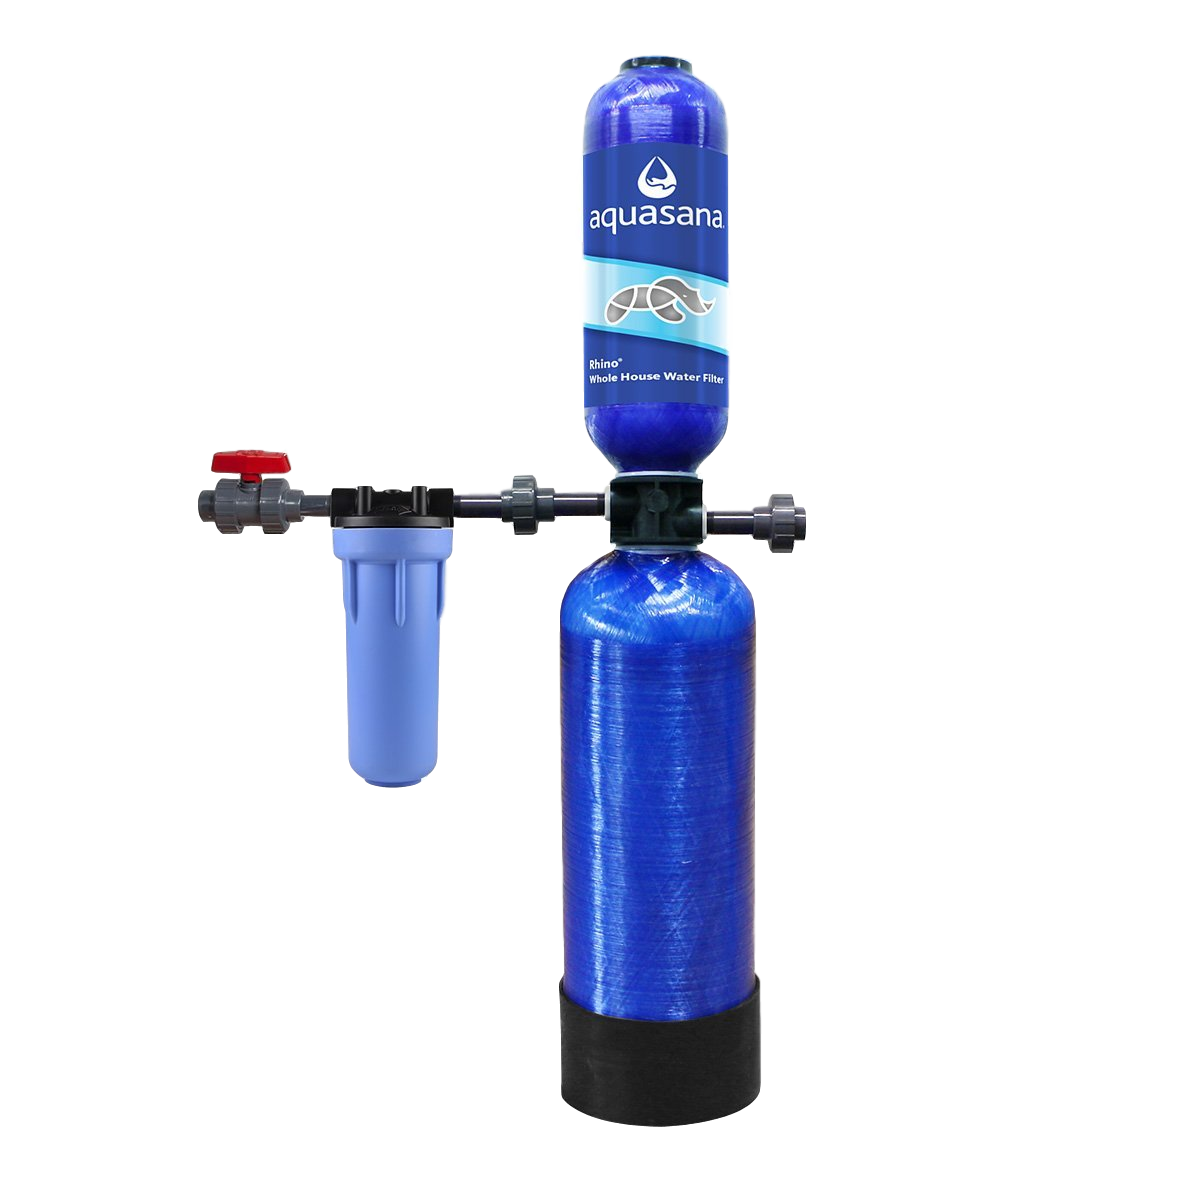 3 Best Aquasana Water Softeners Our 2018 Product Reviews